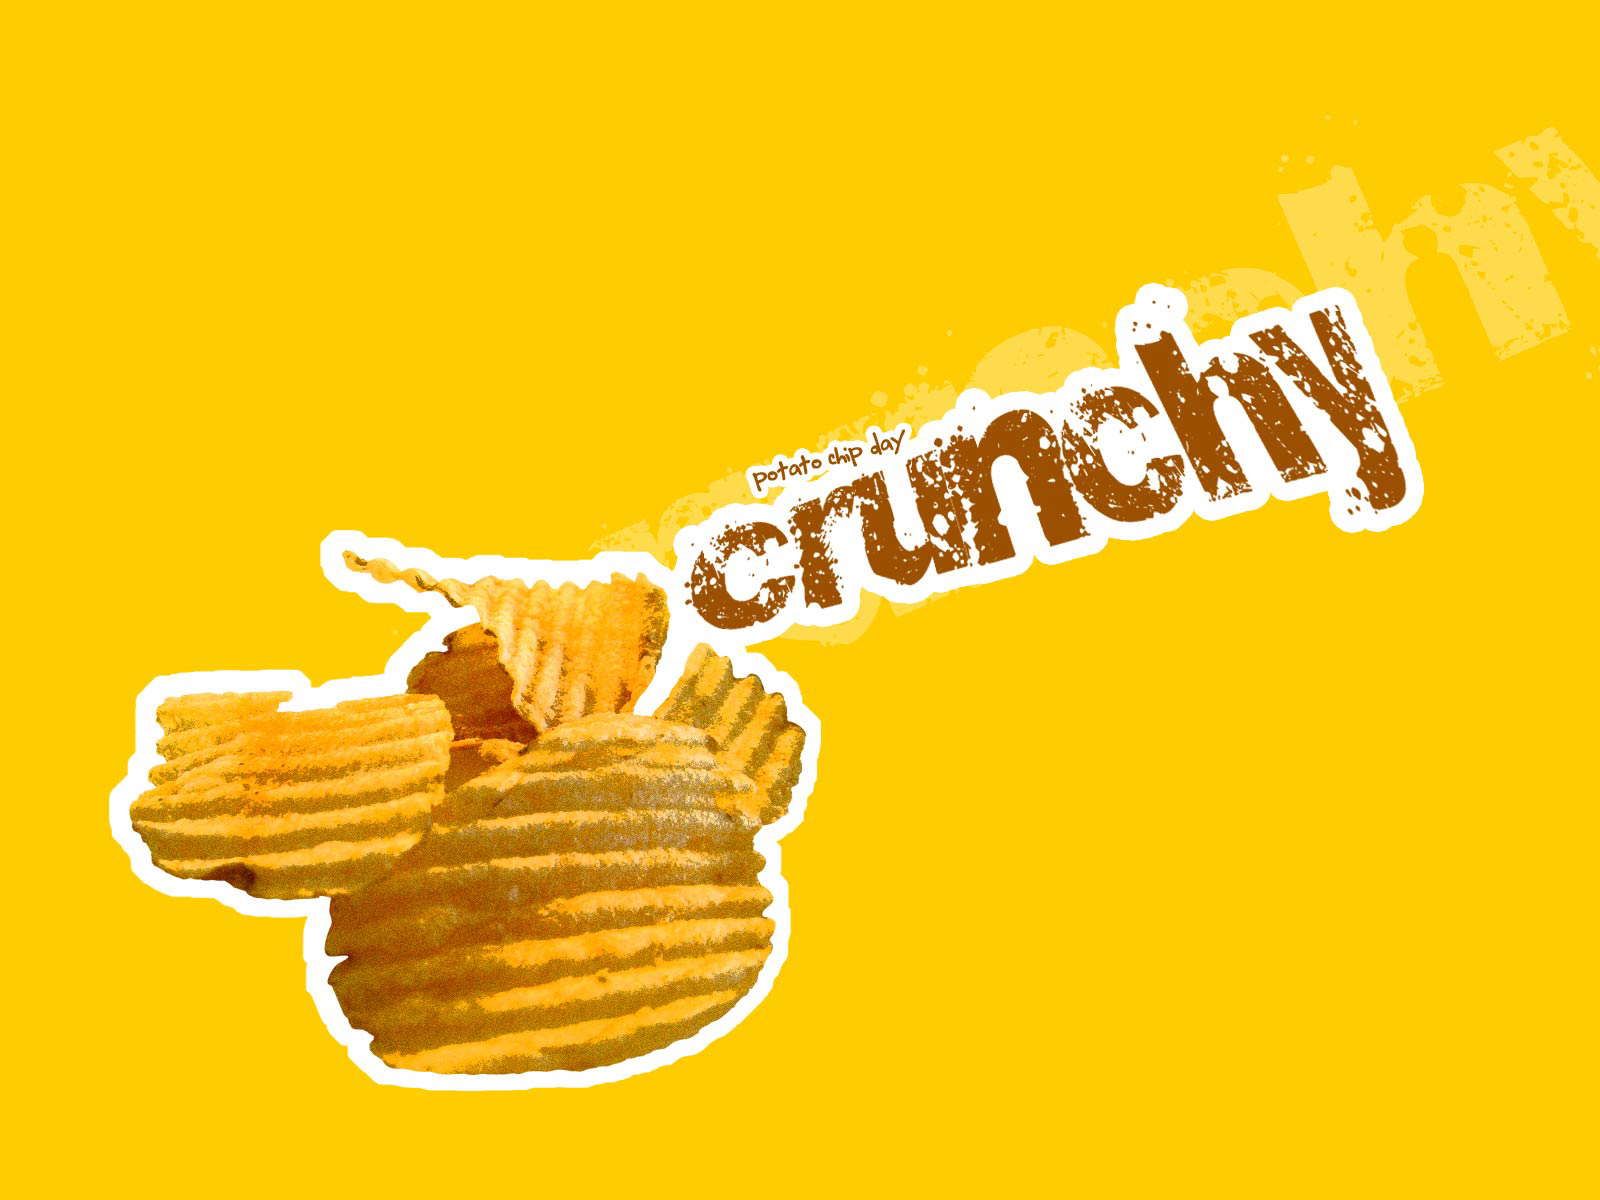 crunchy food cravings